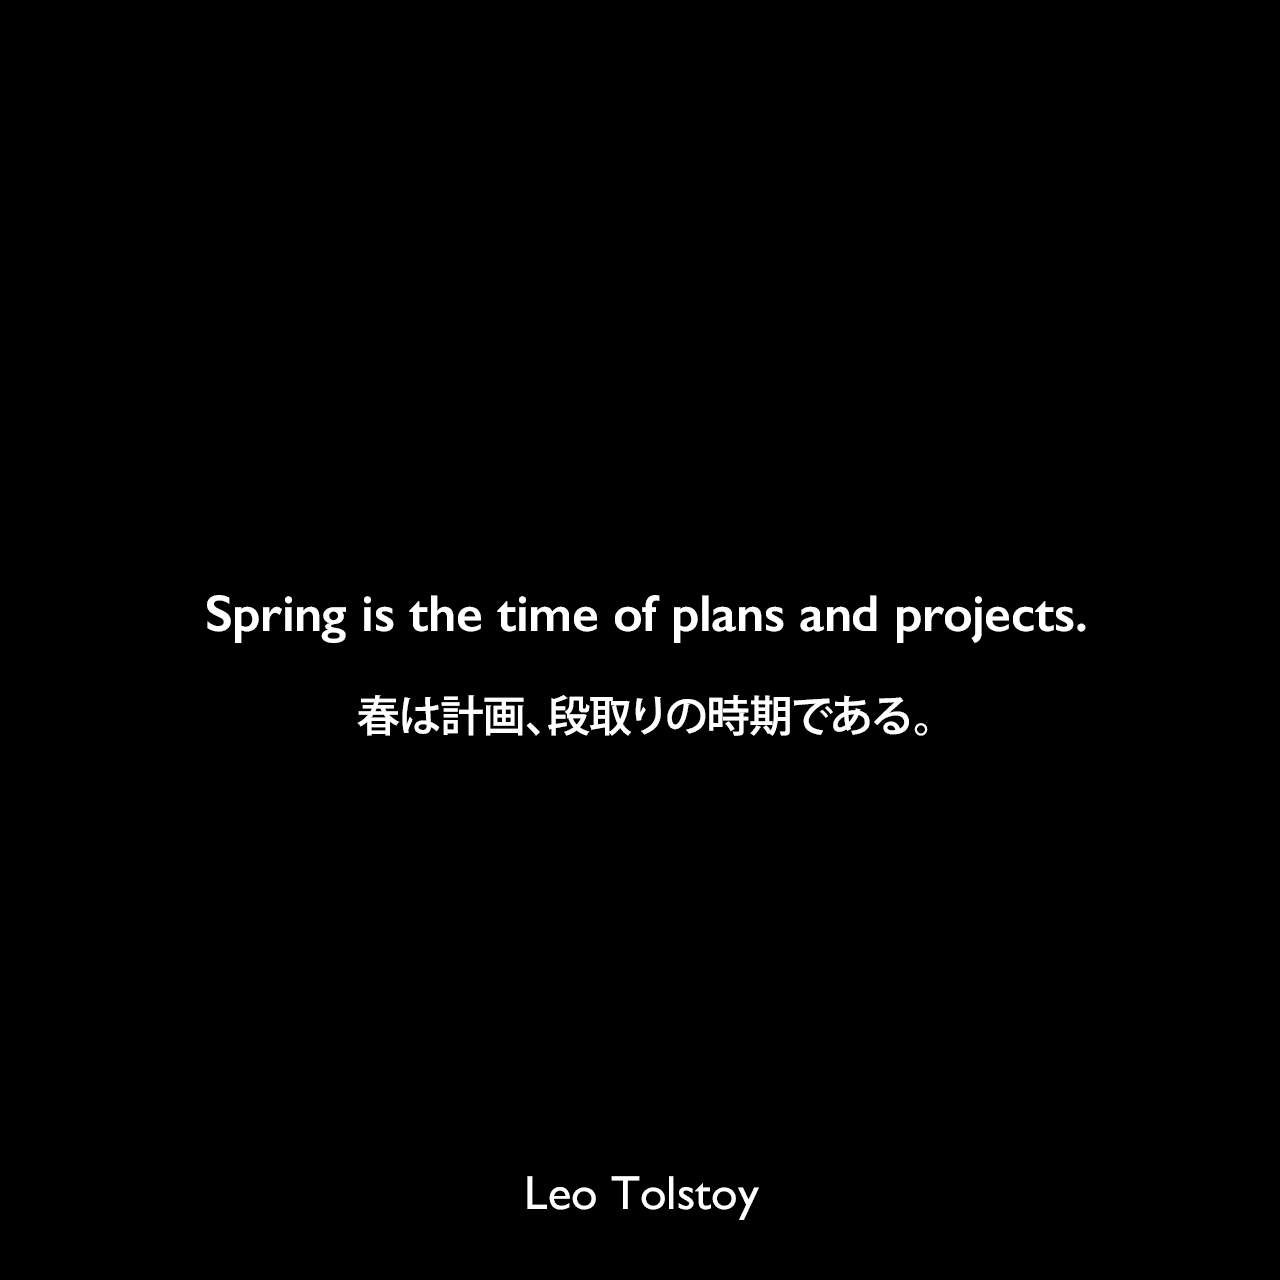 Spring is the time of plans and projects.春は計画、段取りの時期である。- トルストイによる小説「アンナ・カレーニナ」よりLeo Tolstoy